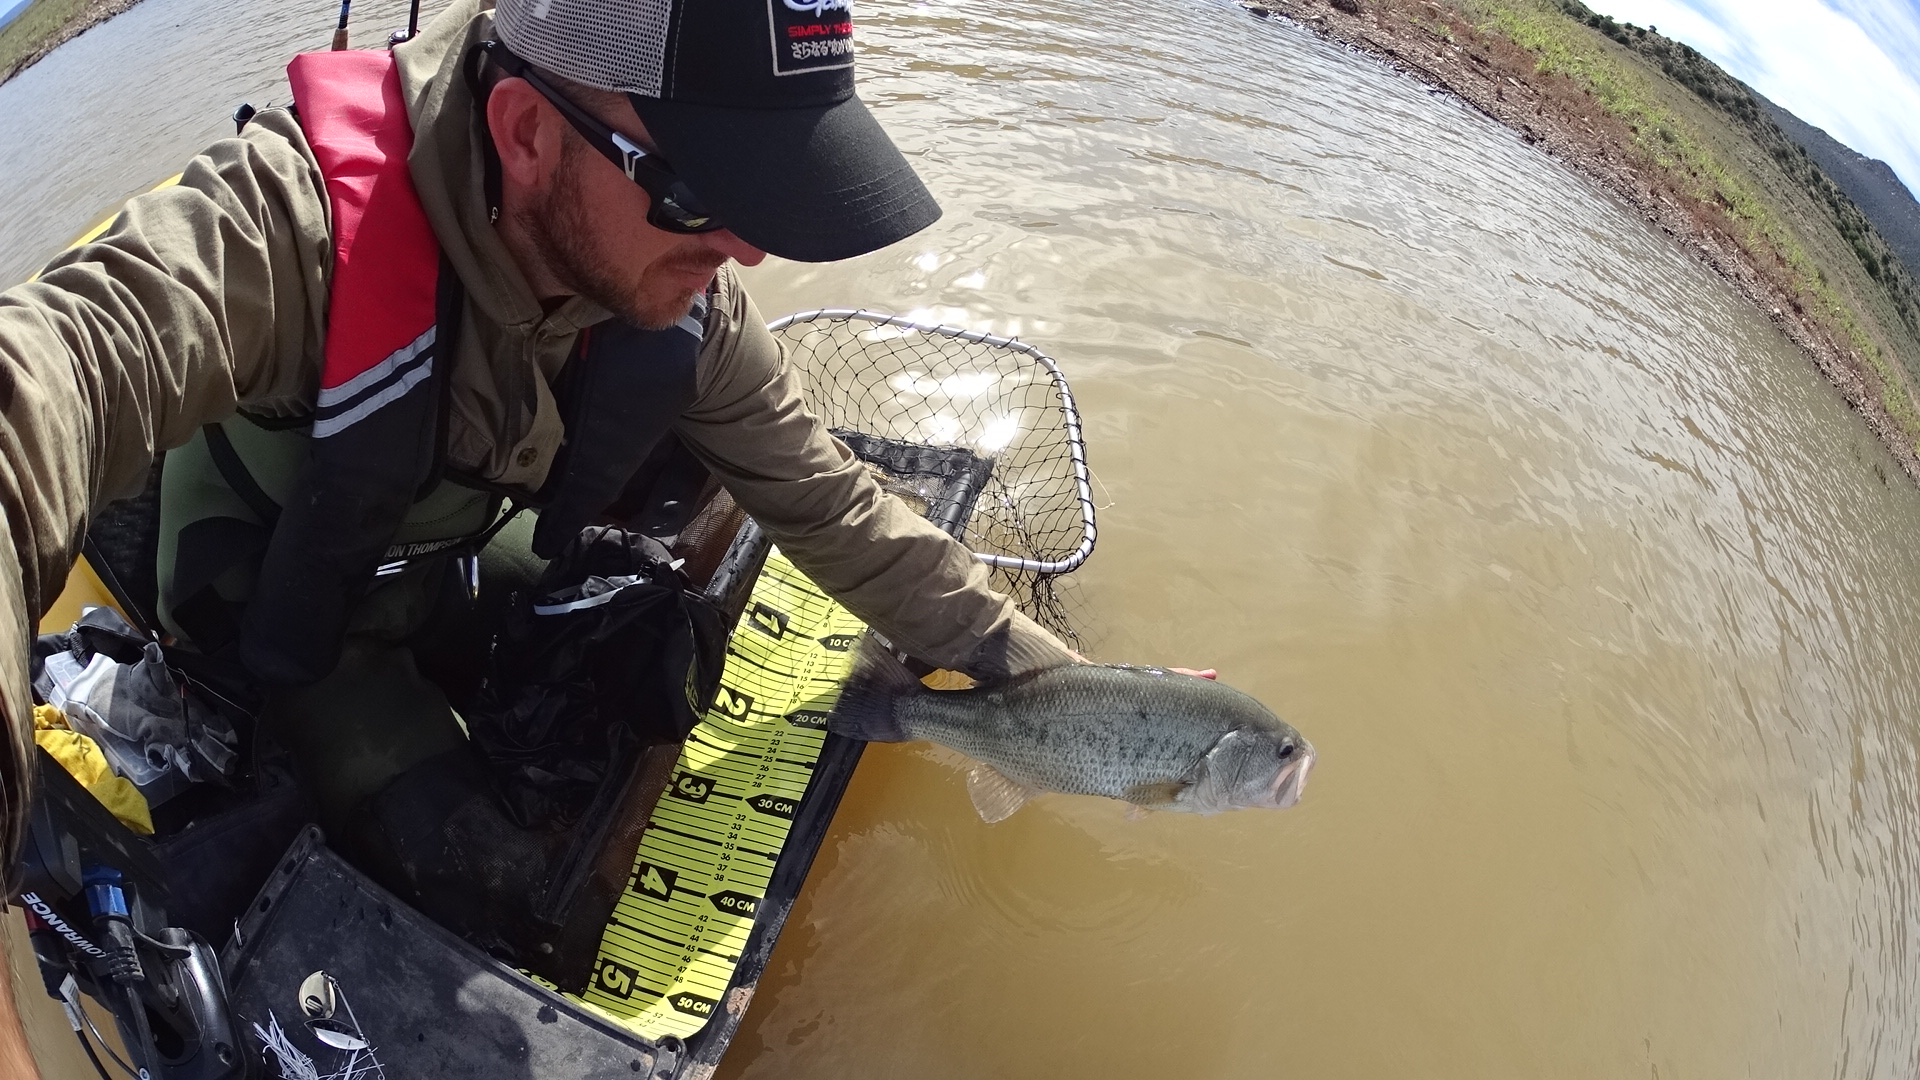 Catch and release, on this shallow flat the pimped spinnerbait triggered this 4.76 lb. bass.